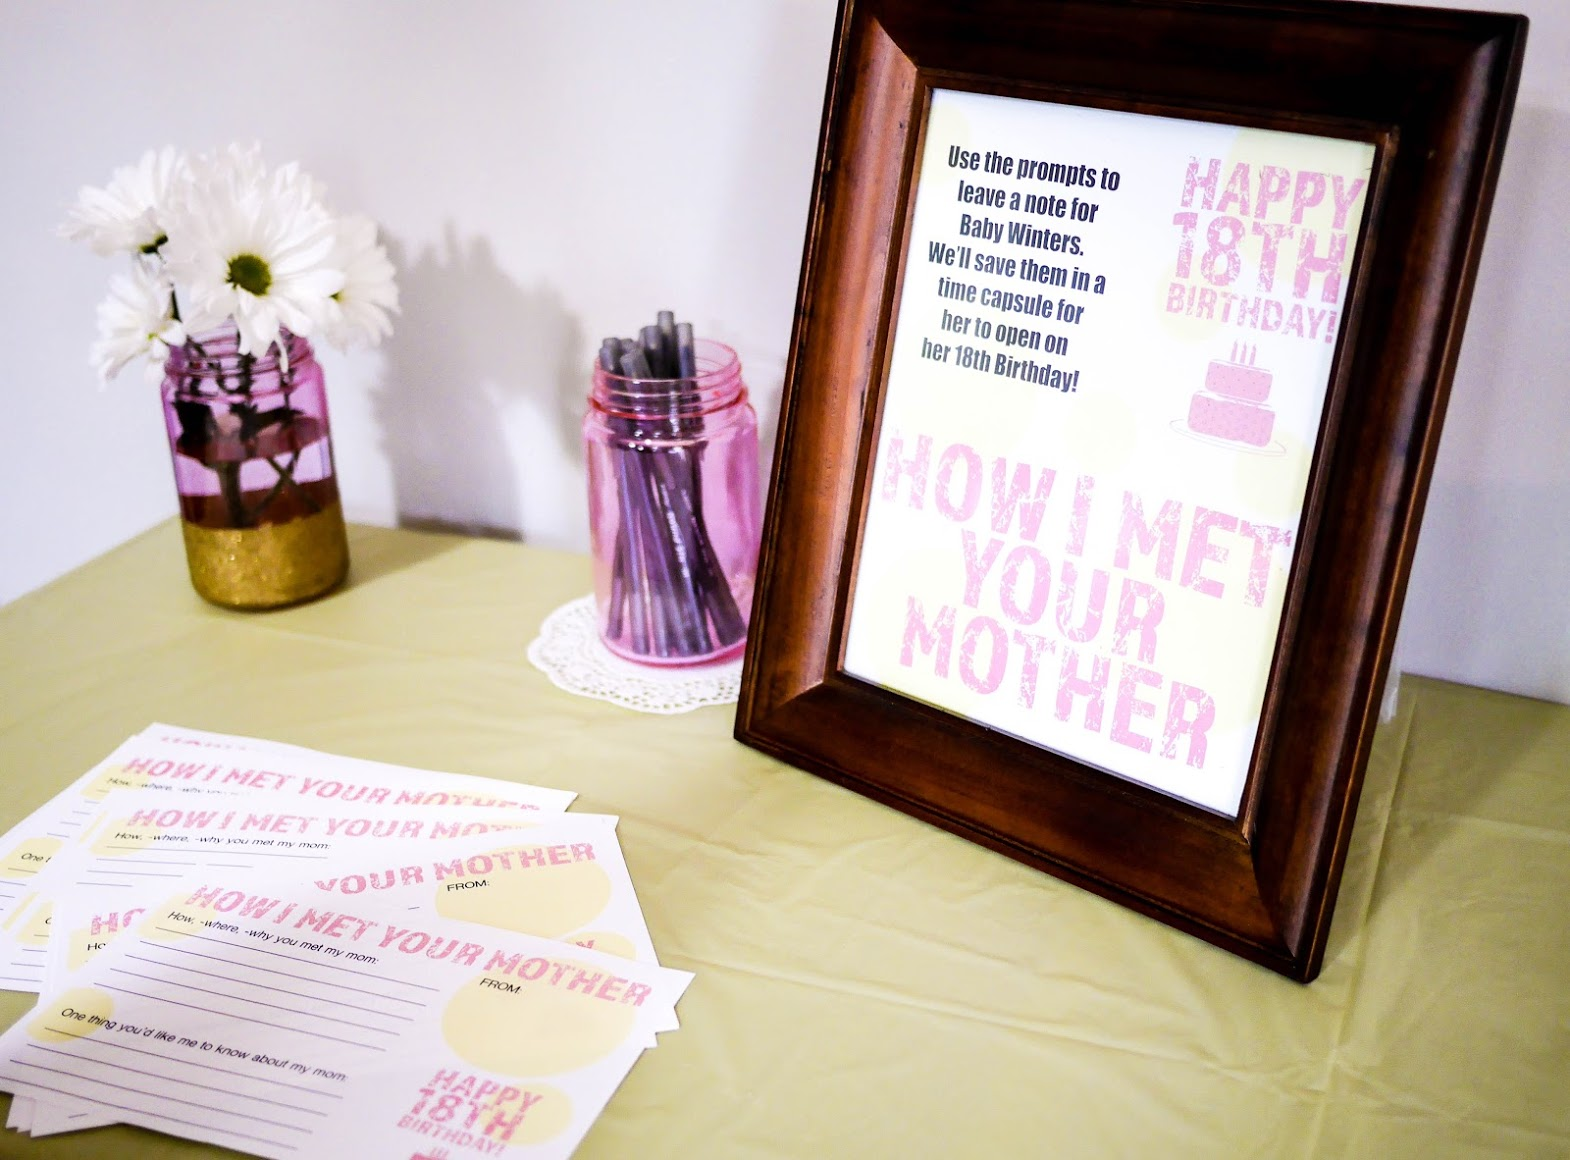 A frame for our free printable sign and cute jars to hold pens makes for an adorable station for guests to leave a fun message for baby's 18th birthday.